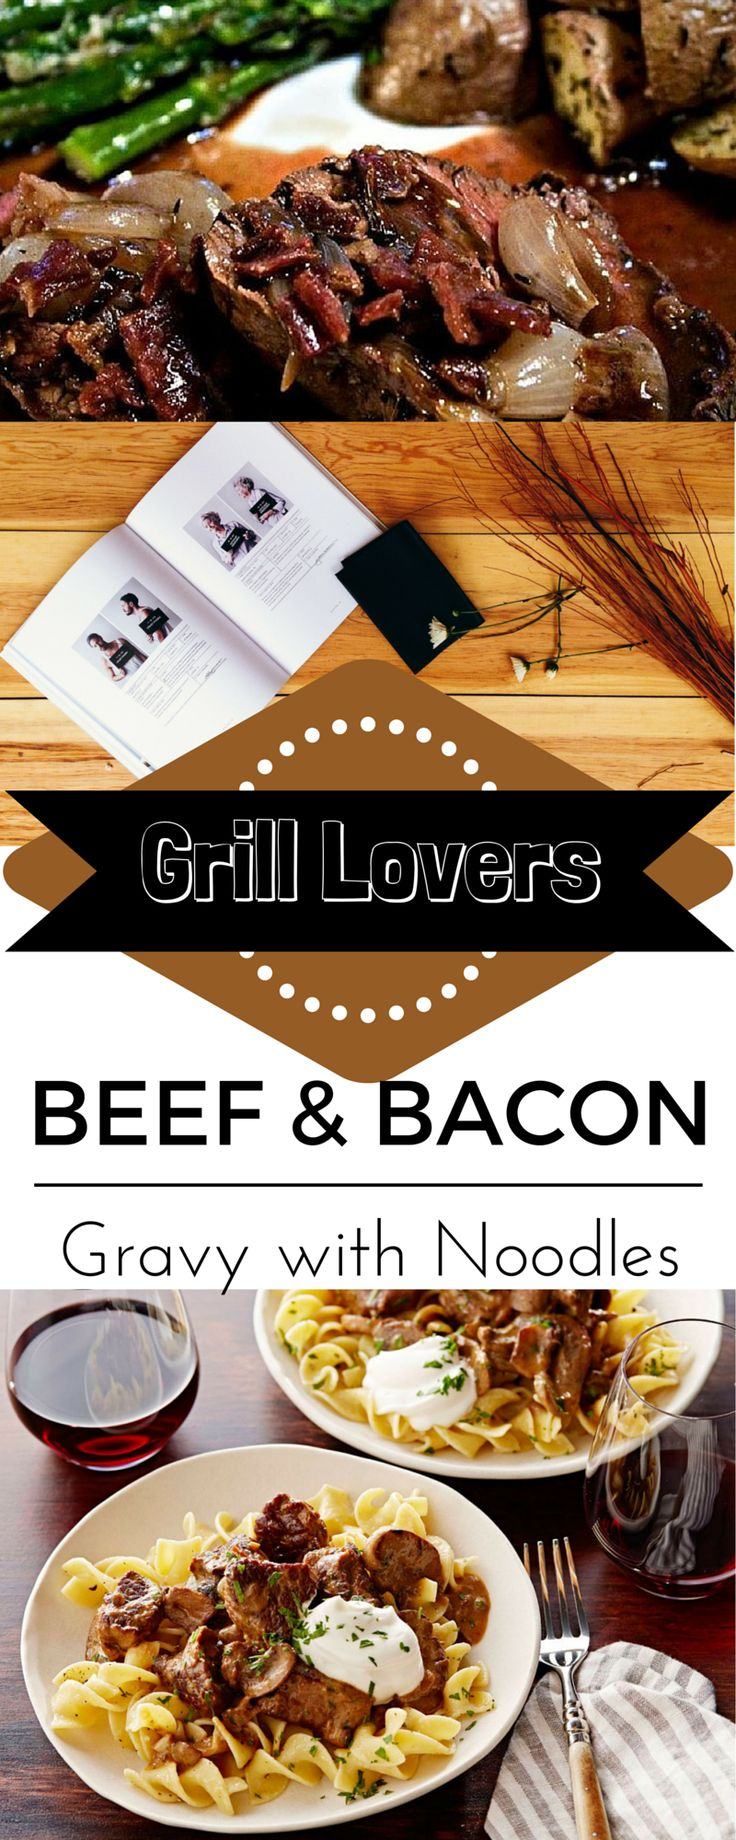 Grill Lovers' Beef and Bacon Gravy with Noodles Recipe ...